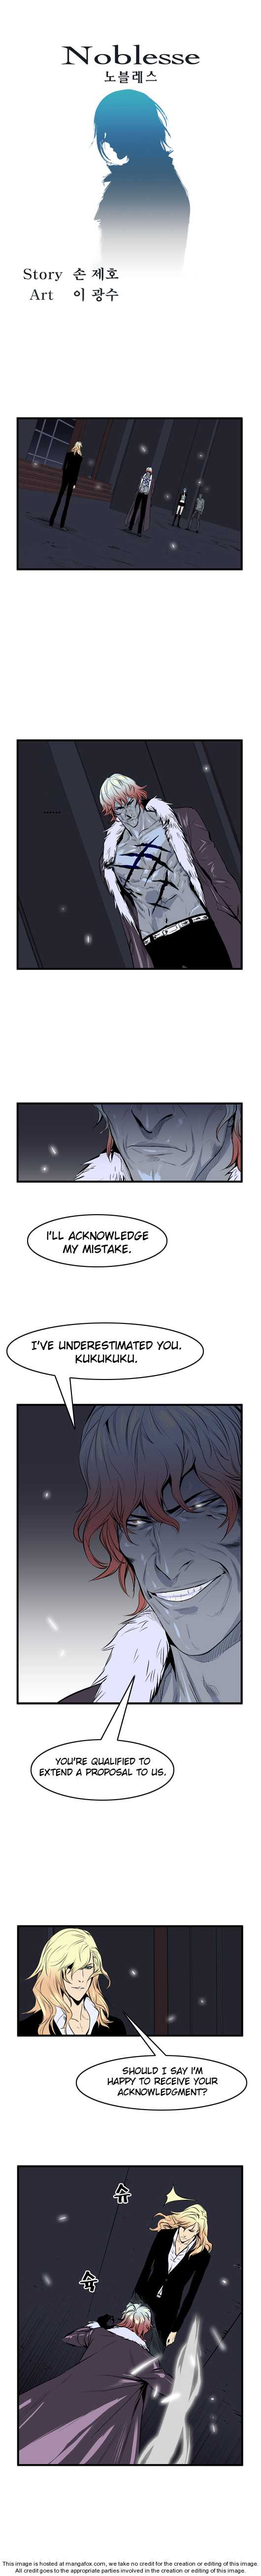 Noblesse 46 Page 1